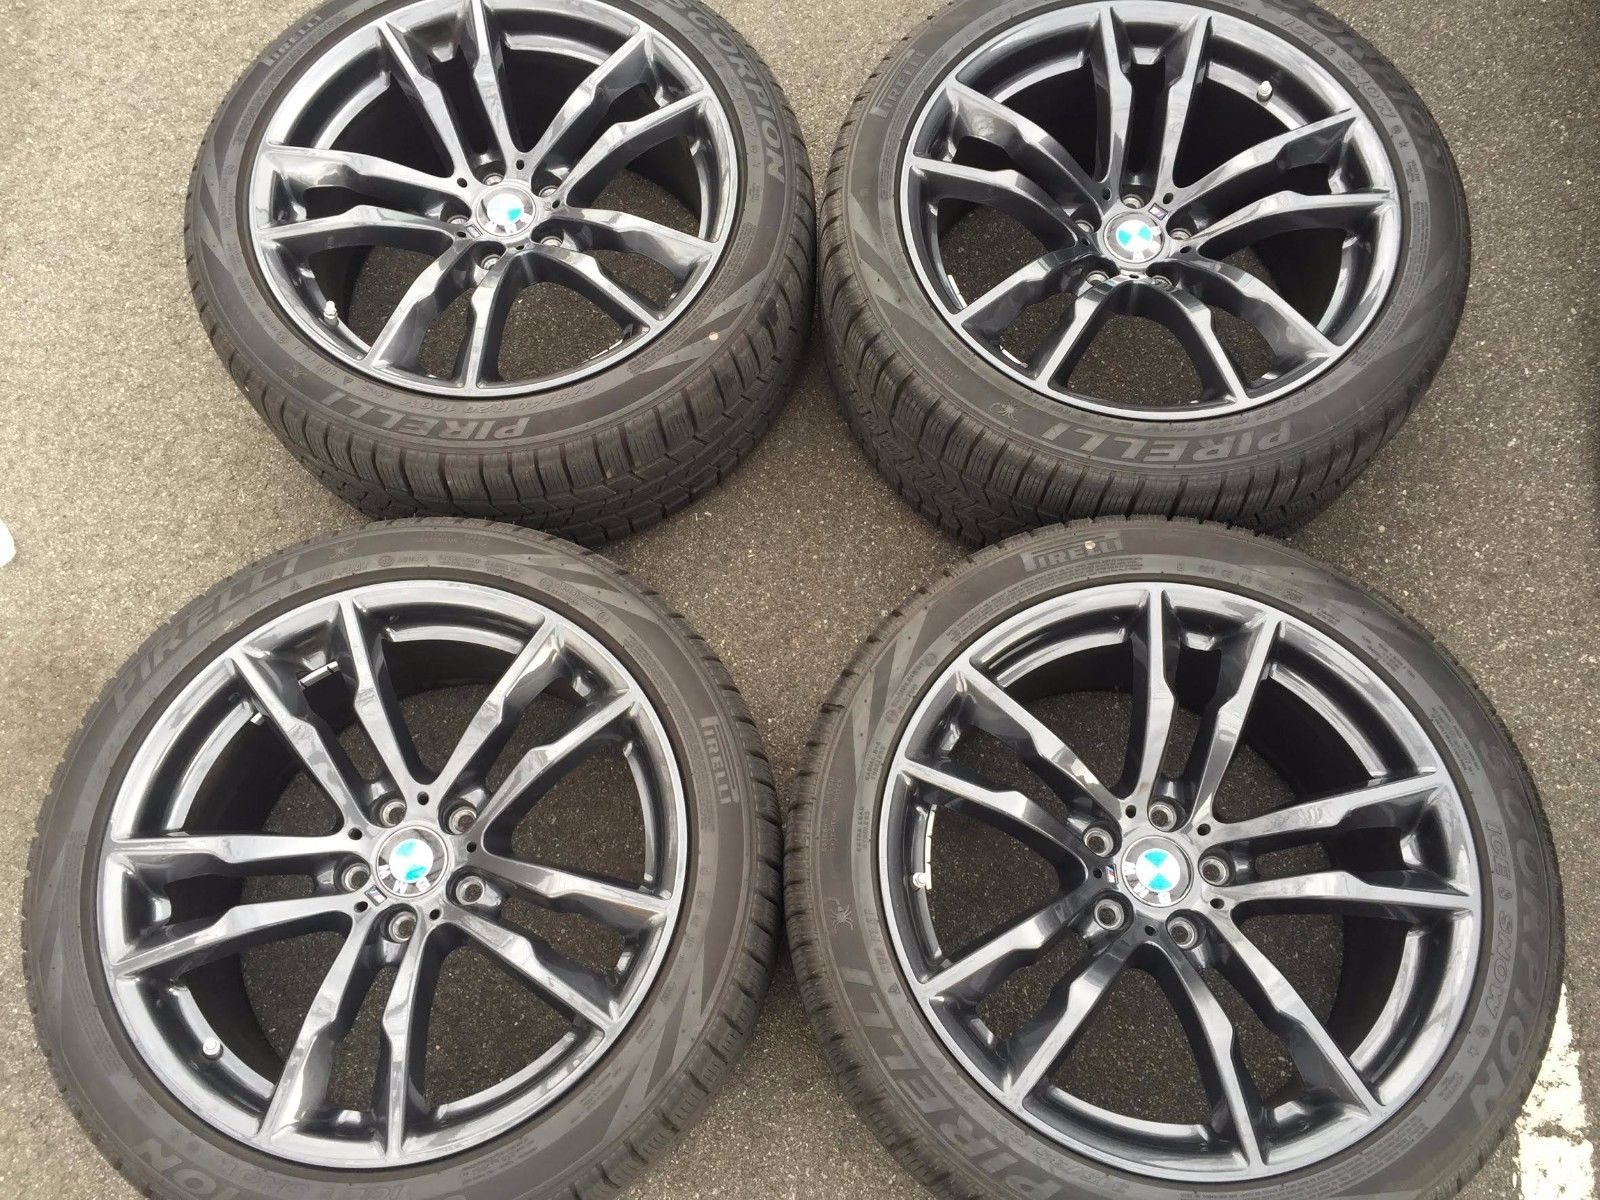 style bmw styles alloy wheels tyres and rim performance wheel